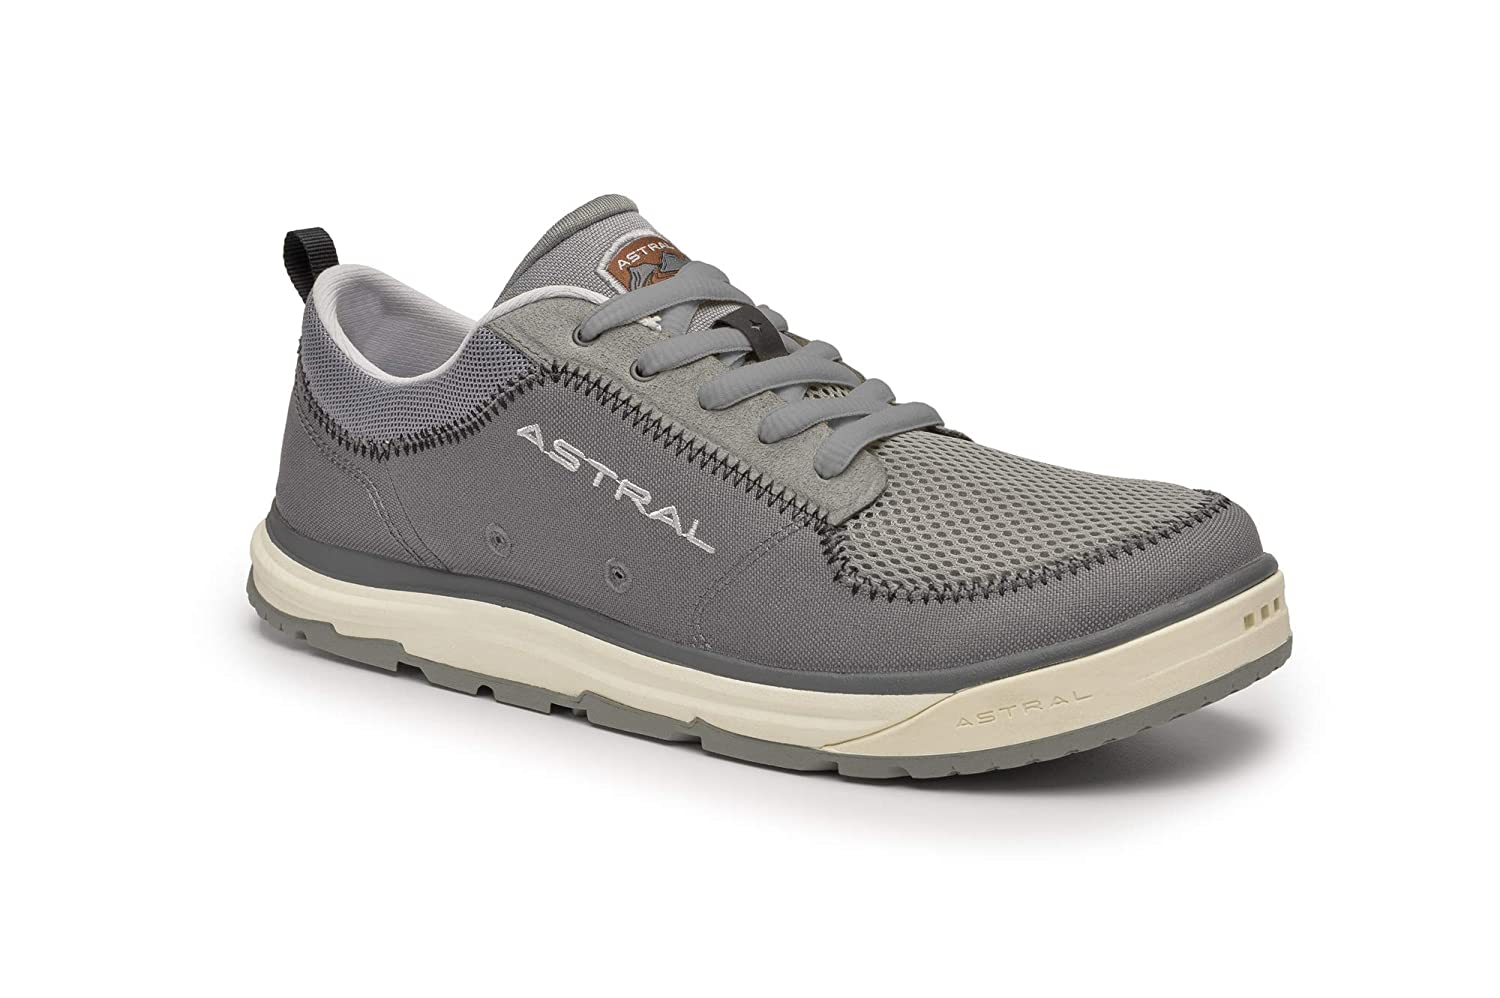 a63ee9e6e24f Amazon.com  Astral Men s Brewer 2.0 Everyday Minimalist Outdoor Sneakers